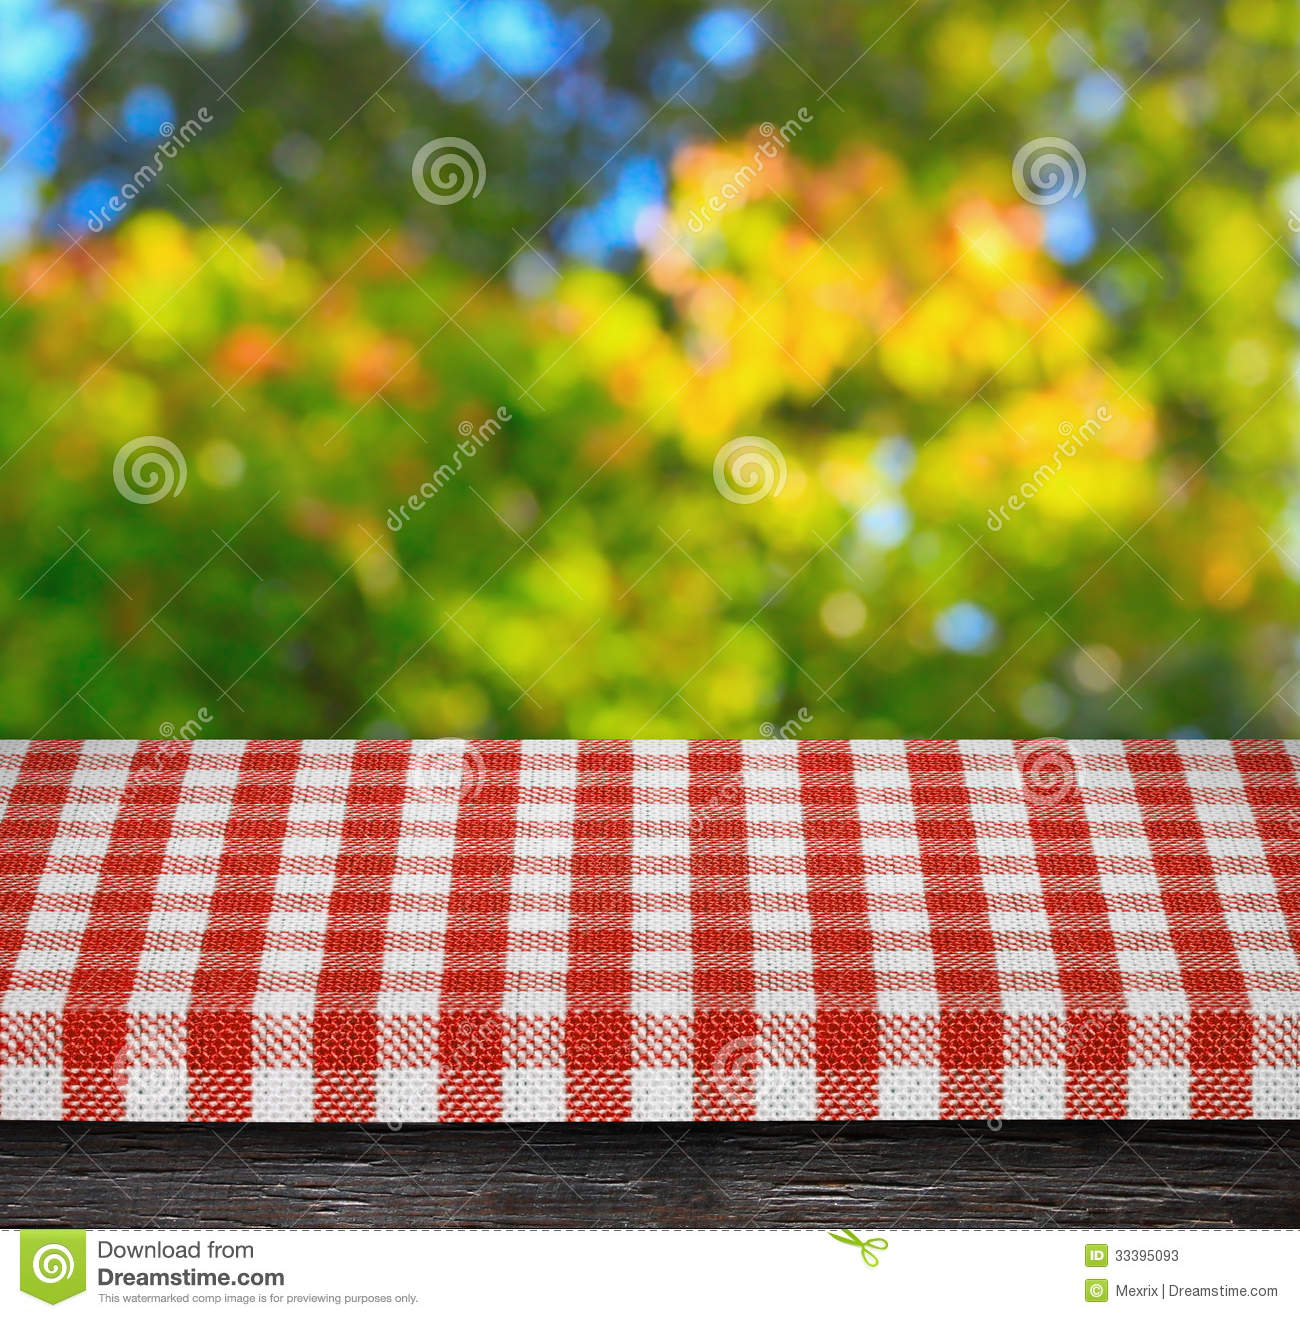 Table Background Stock Photos - Image: 33395093